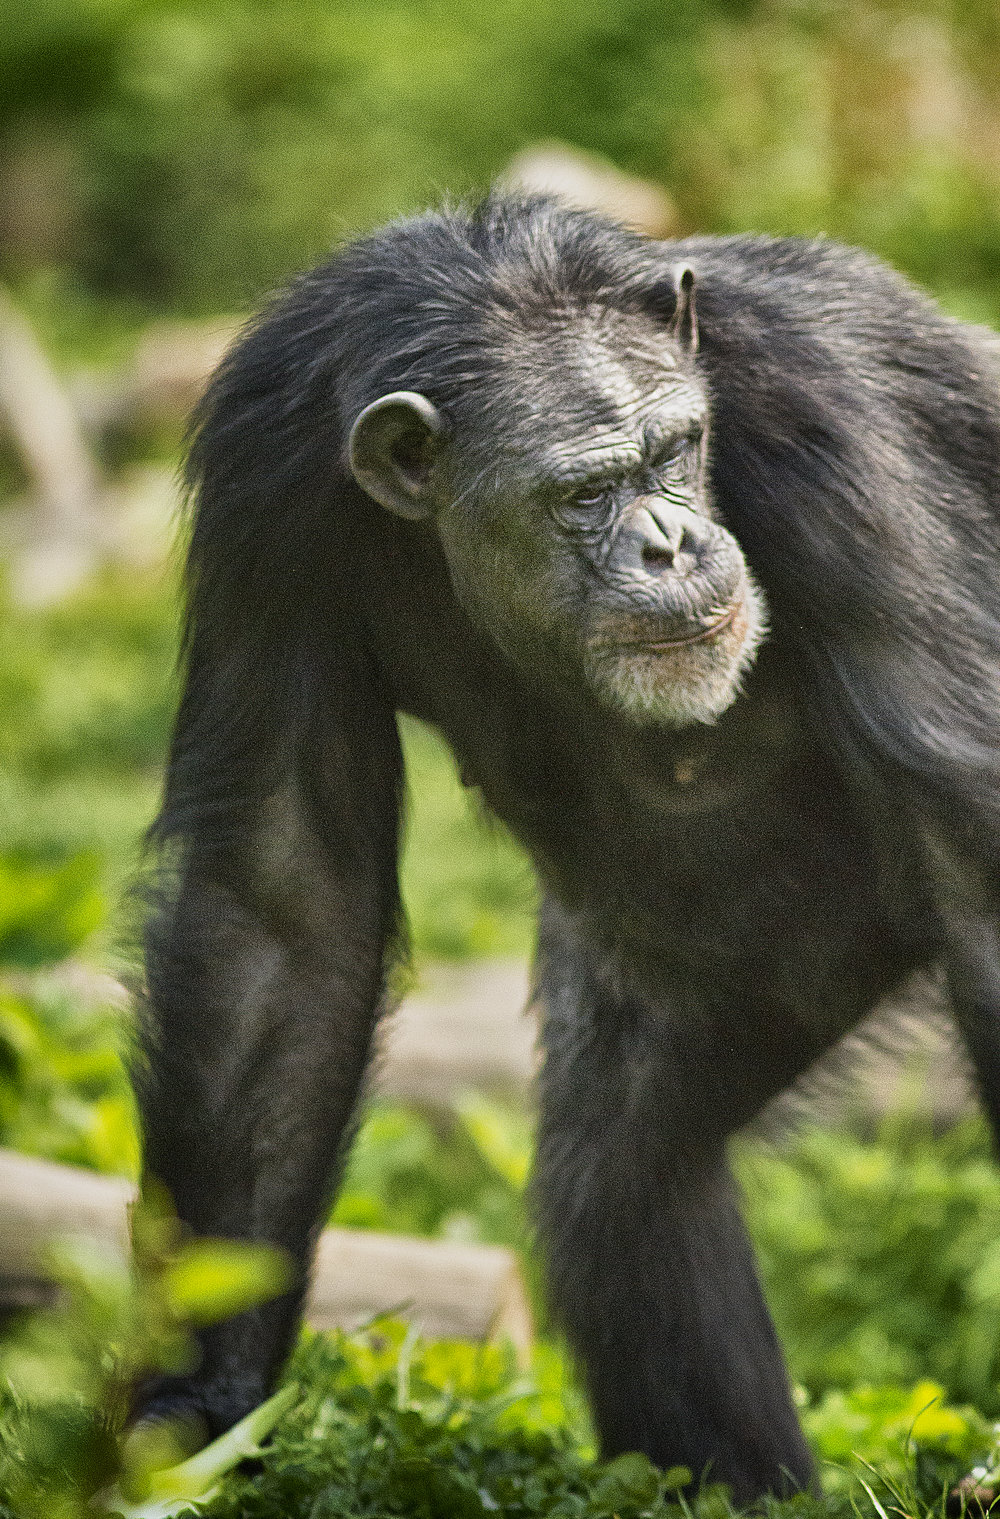 I had a thought Read about The Chimpanzees (sometimes called chimps) Comments